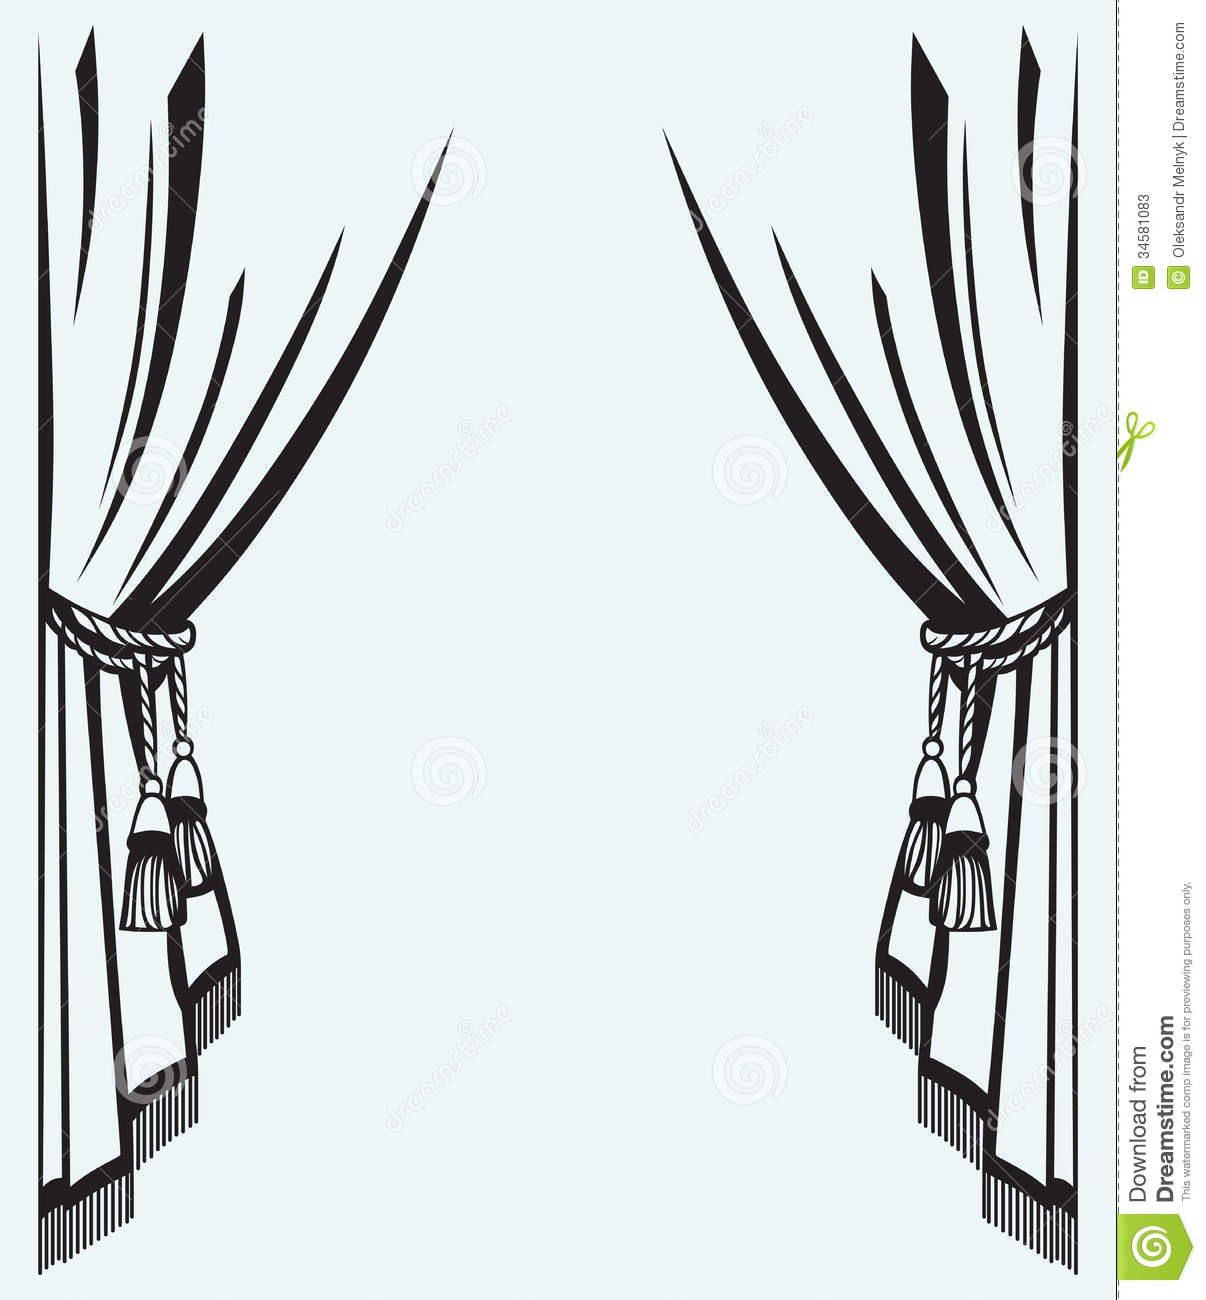 Silhouette Curtain Stock Photos - Image: 34581083